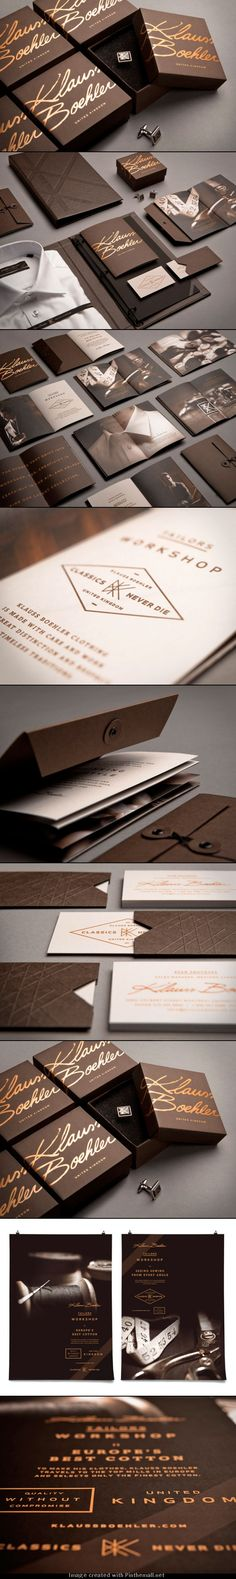 Klauss Boehler | #stationary #corporate #design #corporatedesign #identity #branding #marketing < repinned by www.BlickeDeeler.de | Visit our website: www.blickedeeler.de/leistungen/corporate-design